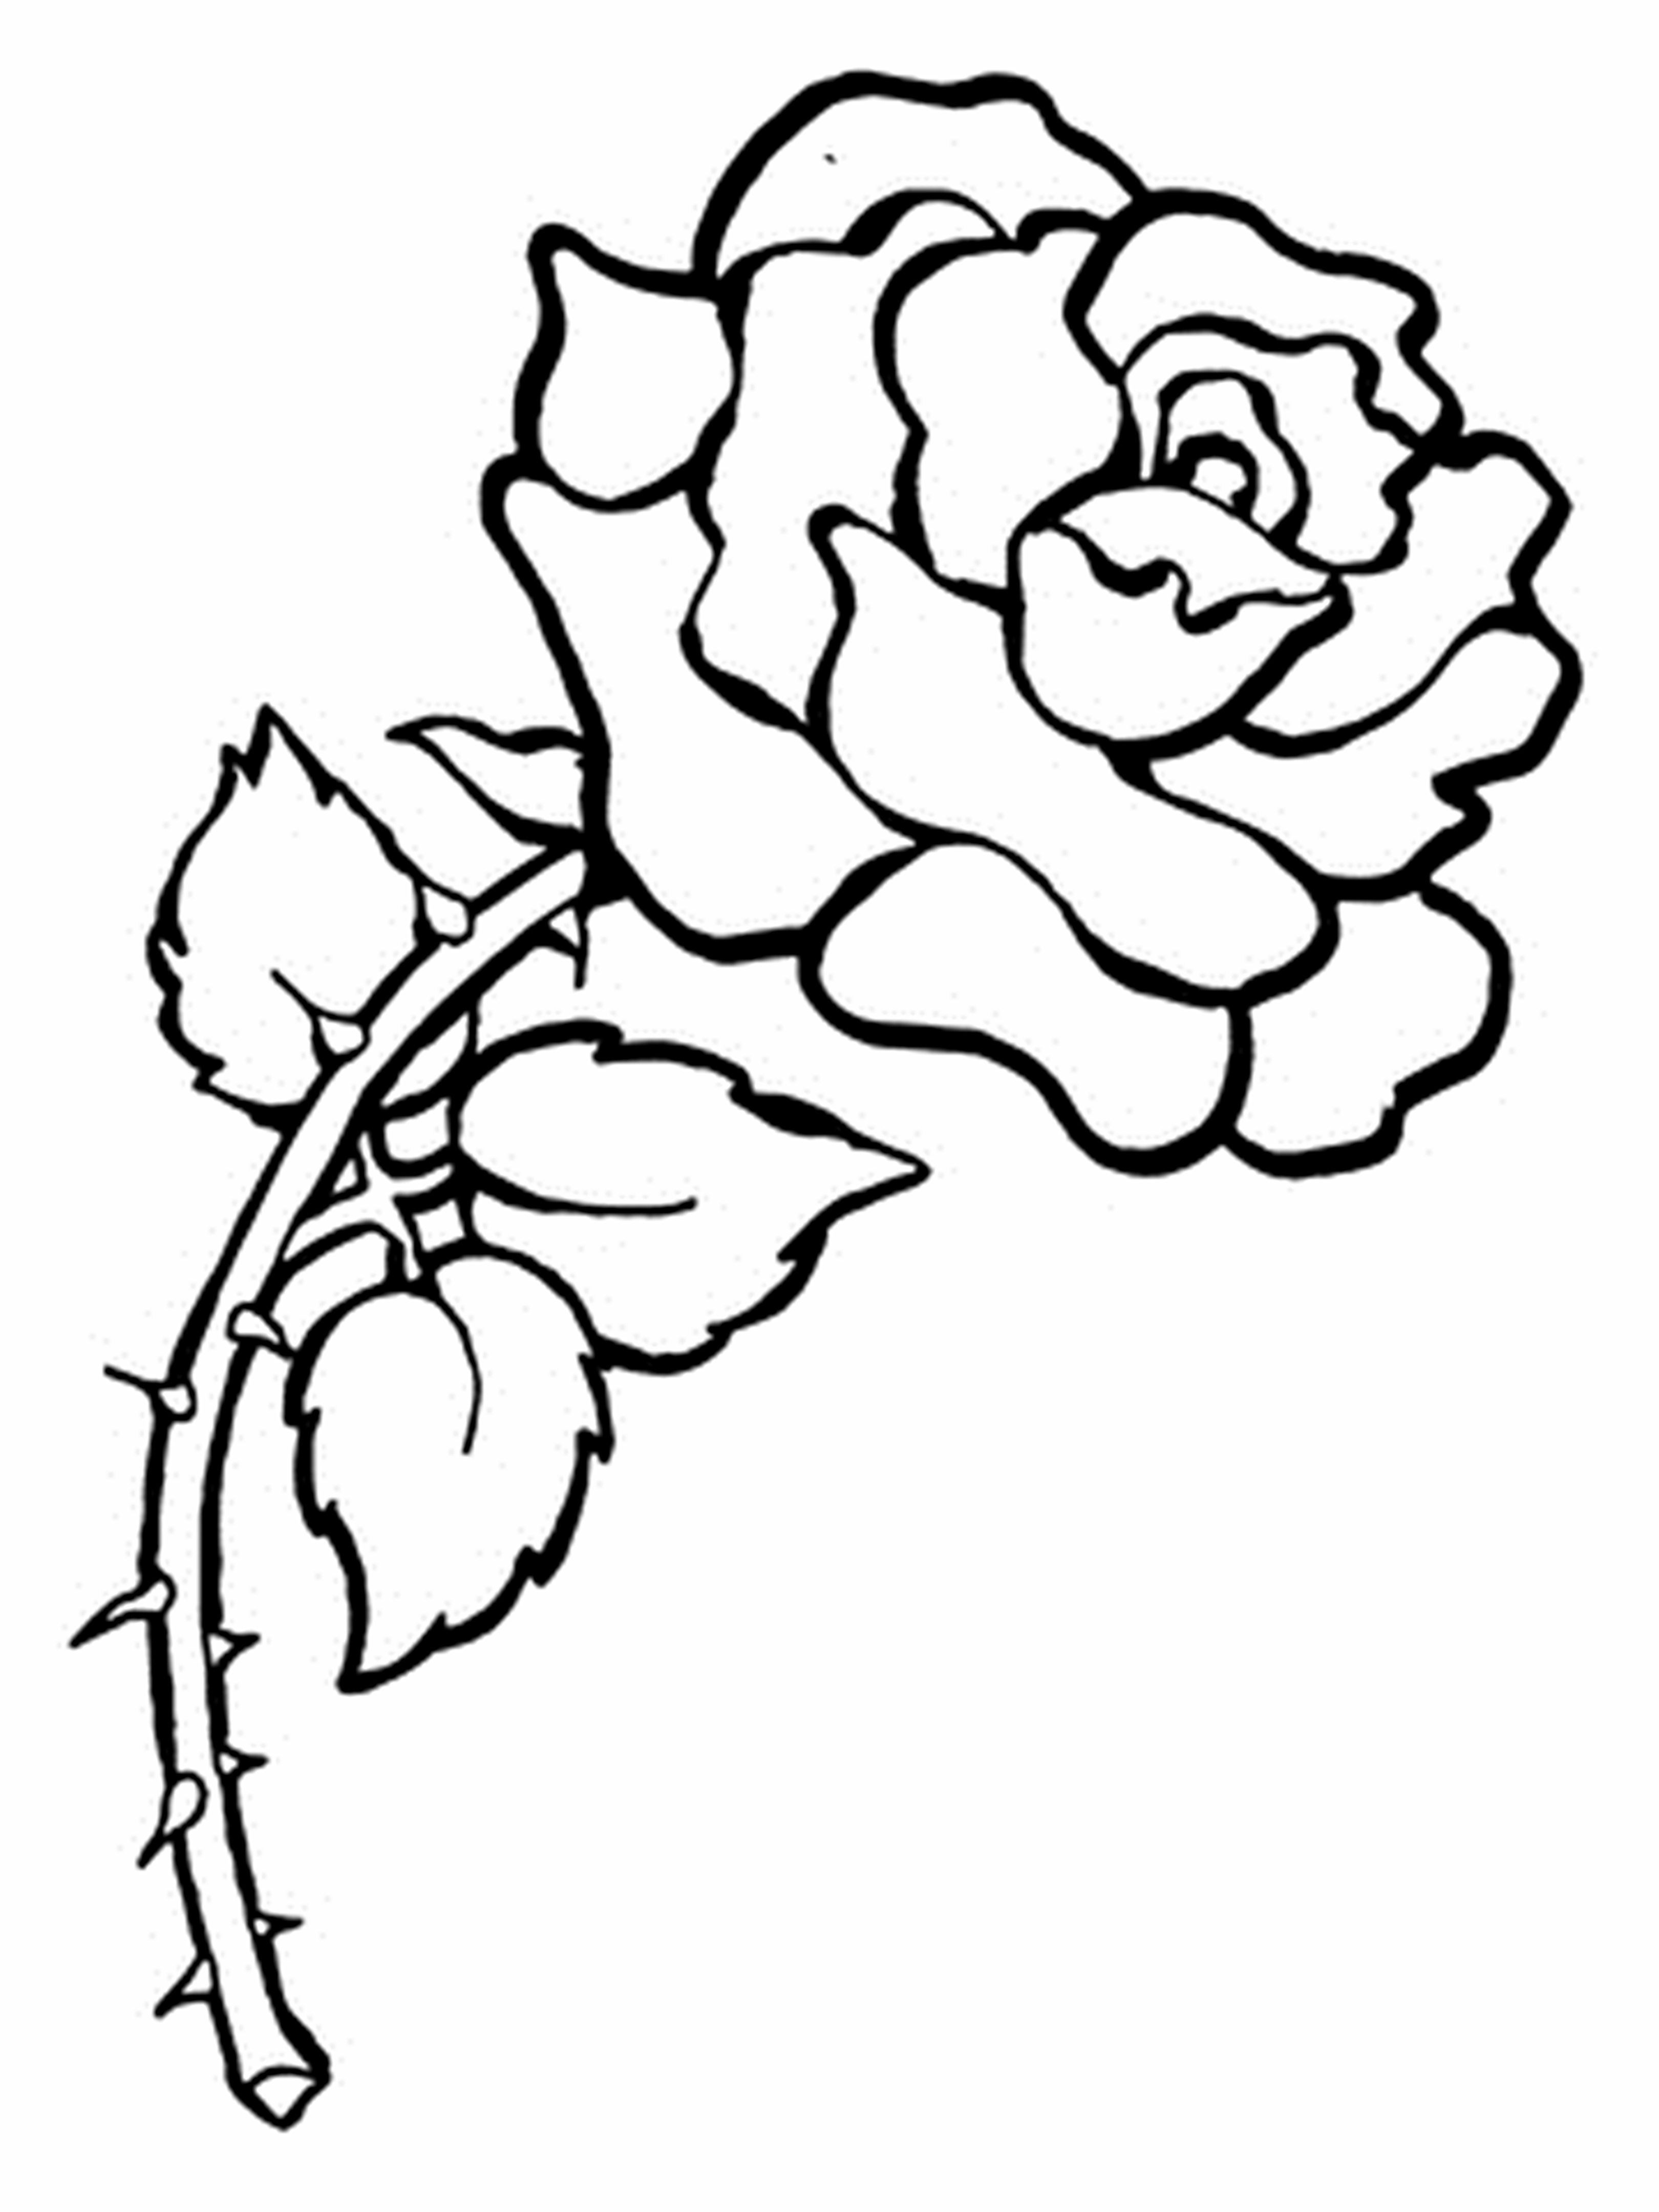 coloring picture of flower flower coloring pages for adults best coloring pages for picture coloring flower of